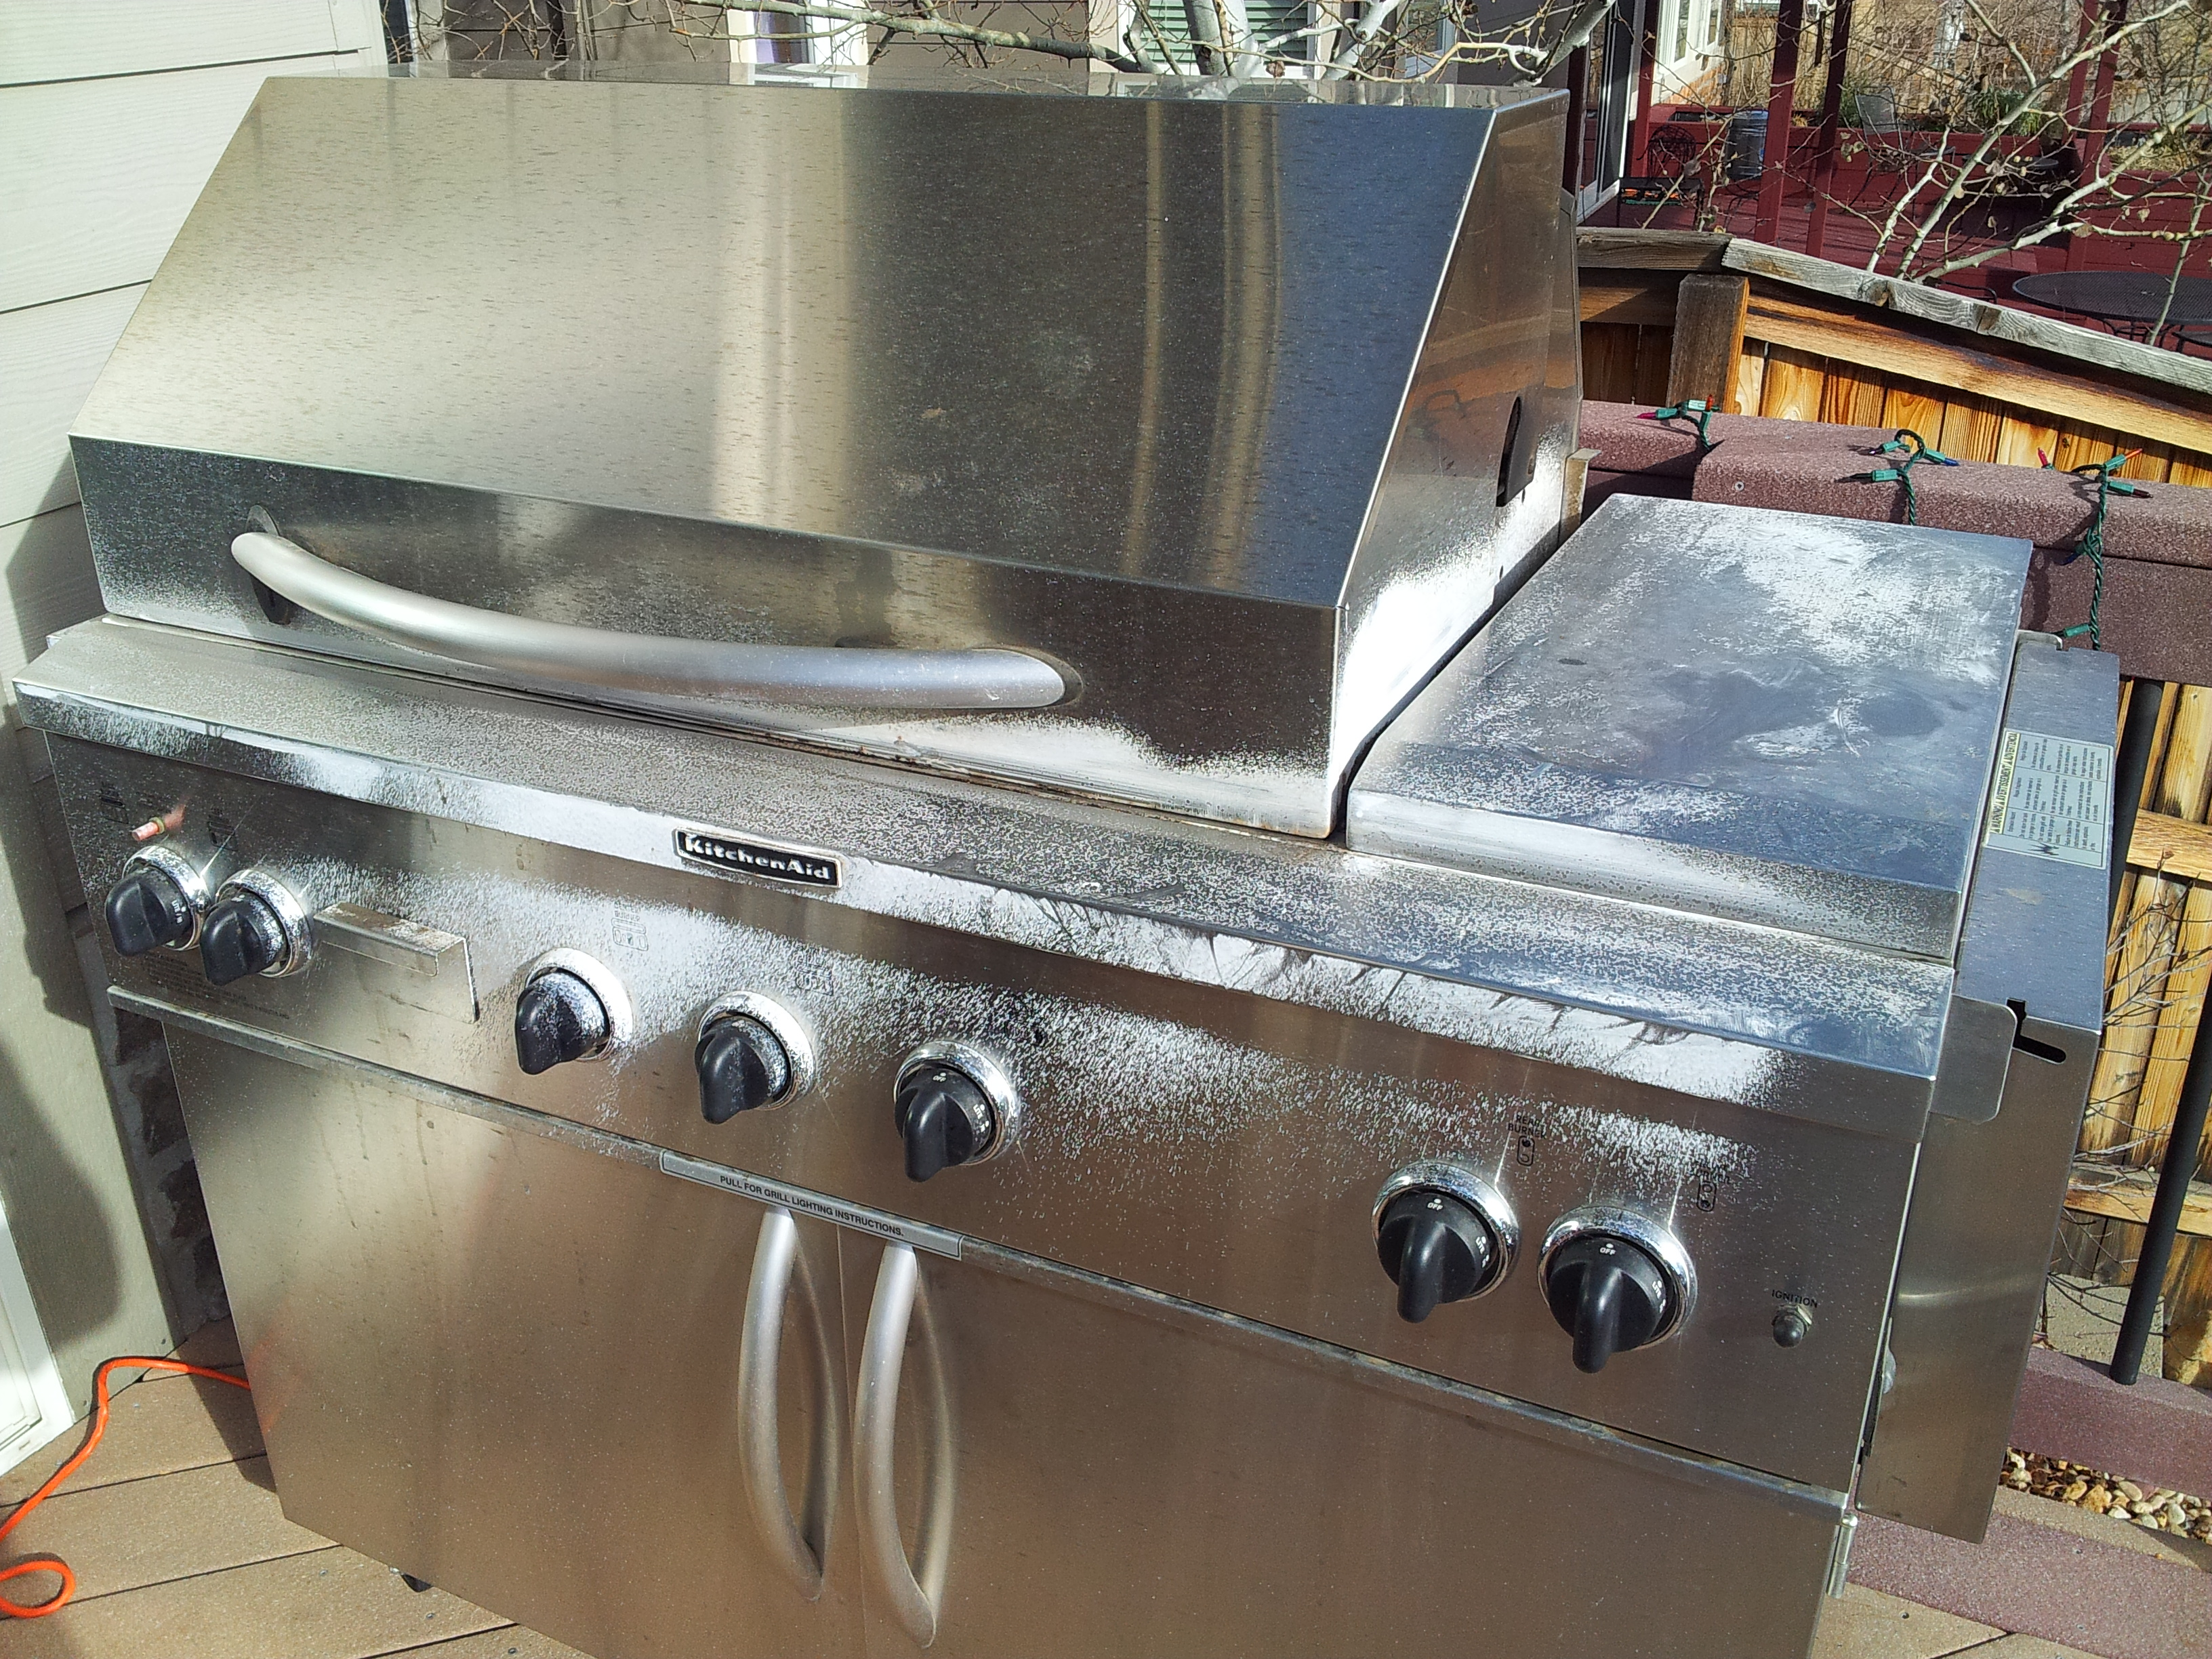 how to clean bbq burners